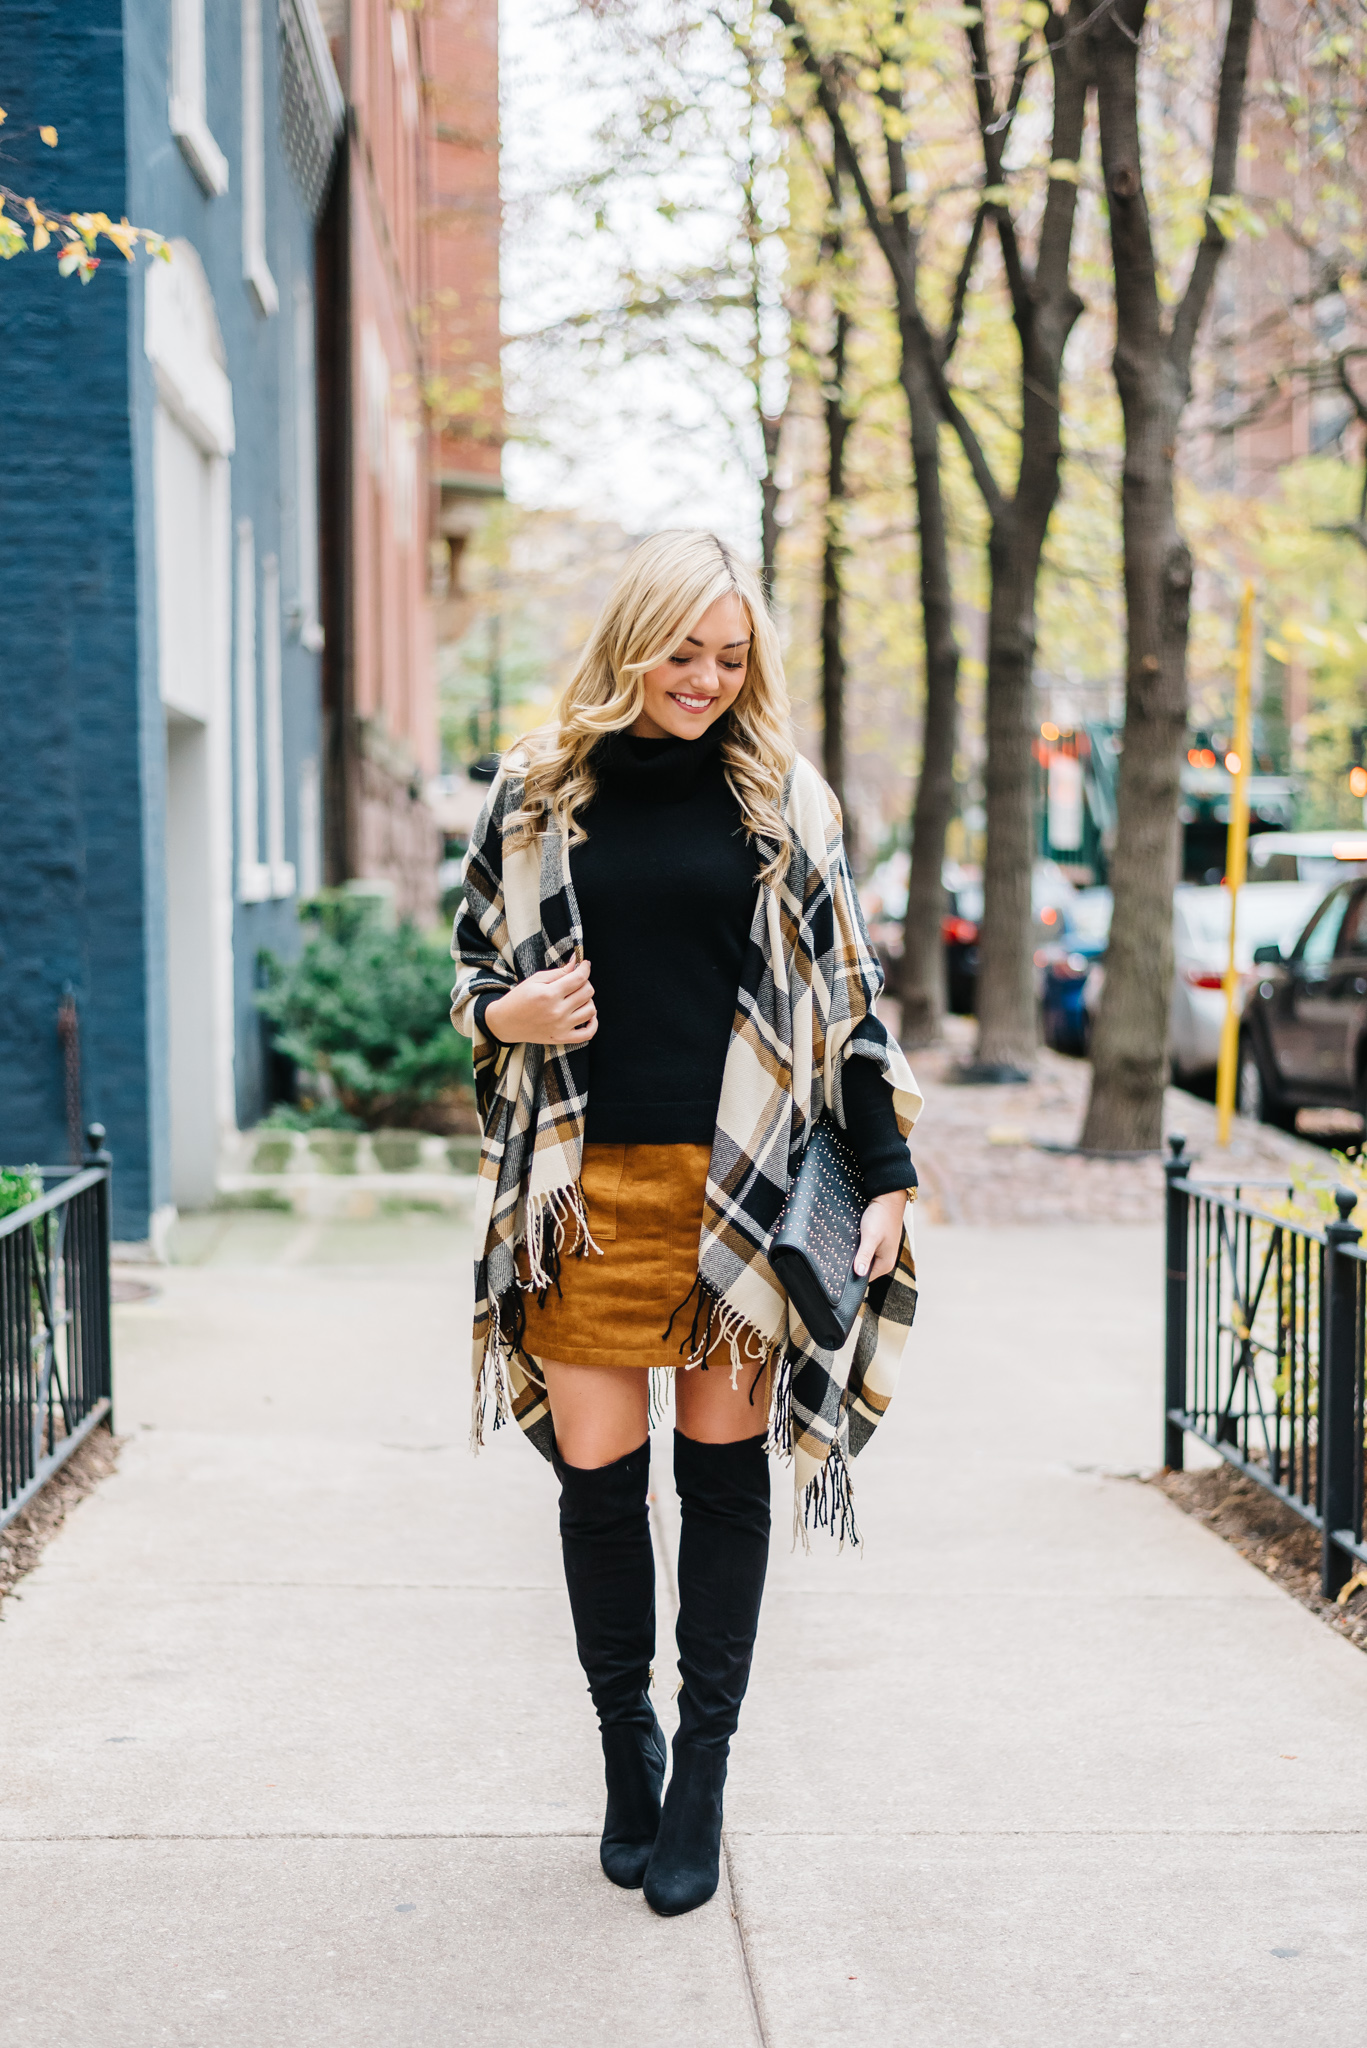 Jessica Sturdy styling a plaid cape over a suede skirt and over the knee boots for a cute fall outfit in Chicago.